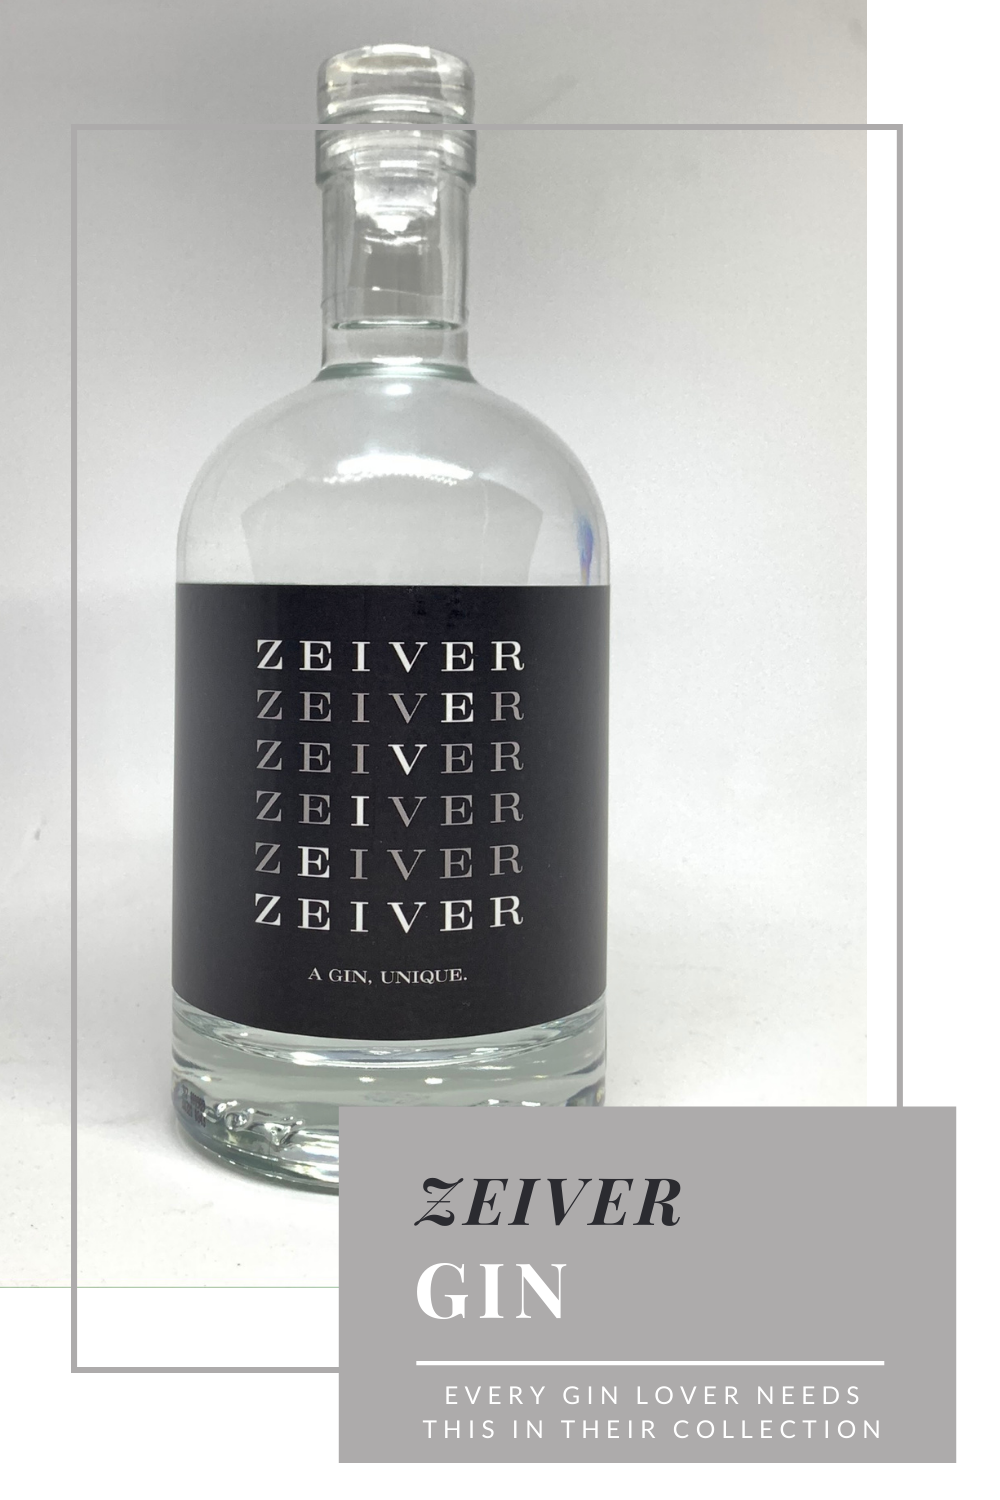 Zeiver gin - tasting and review